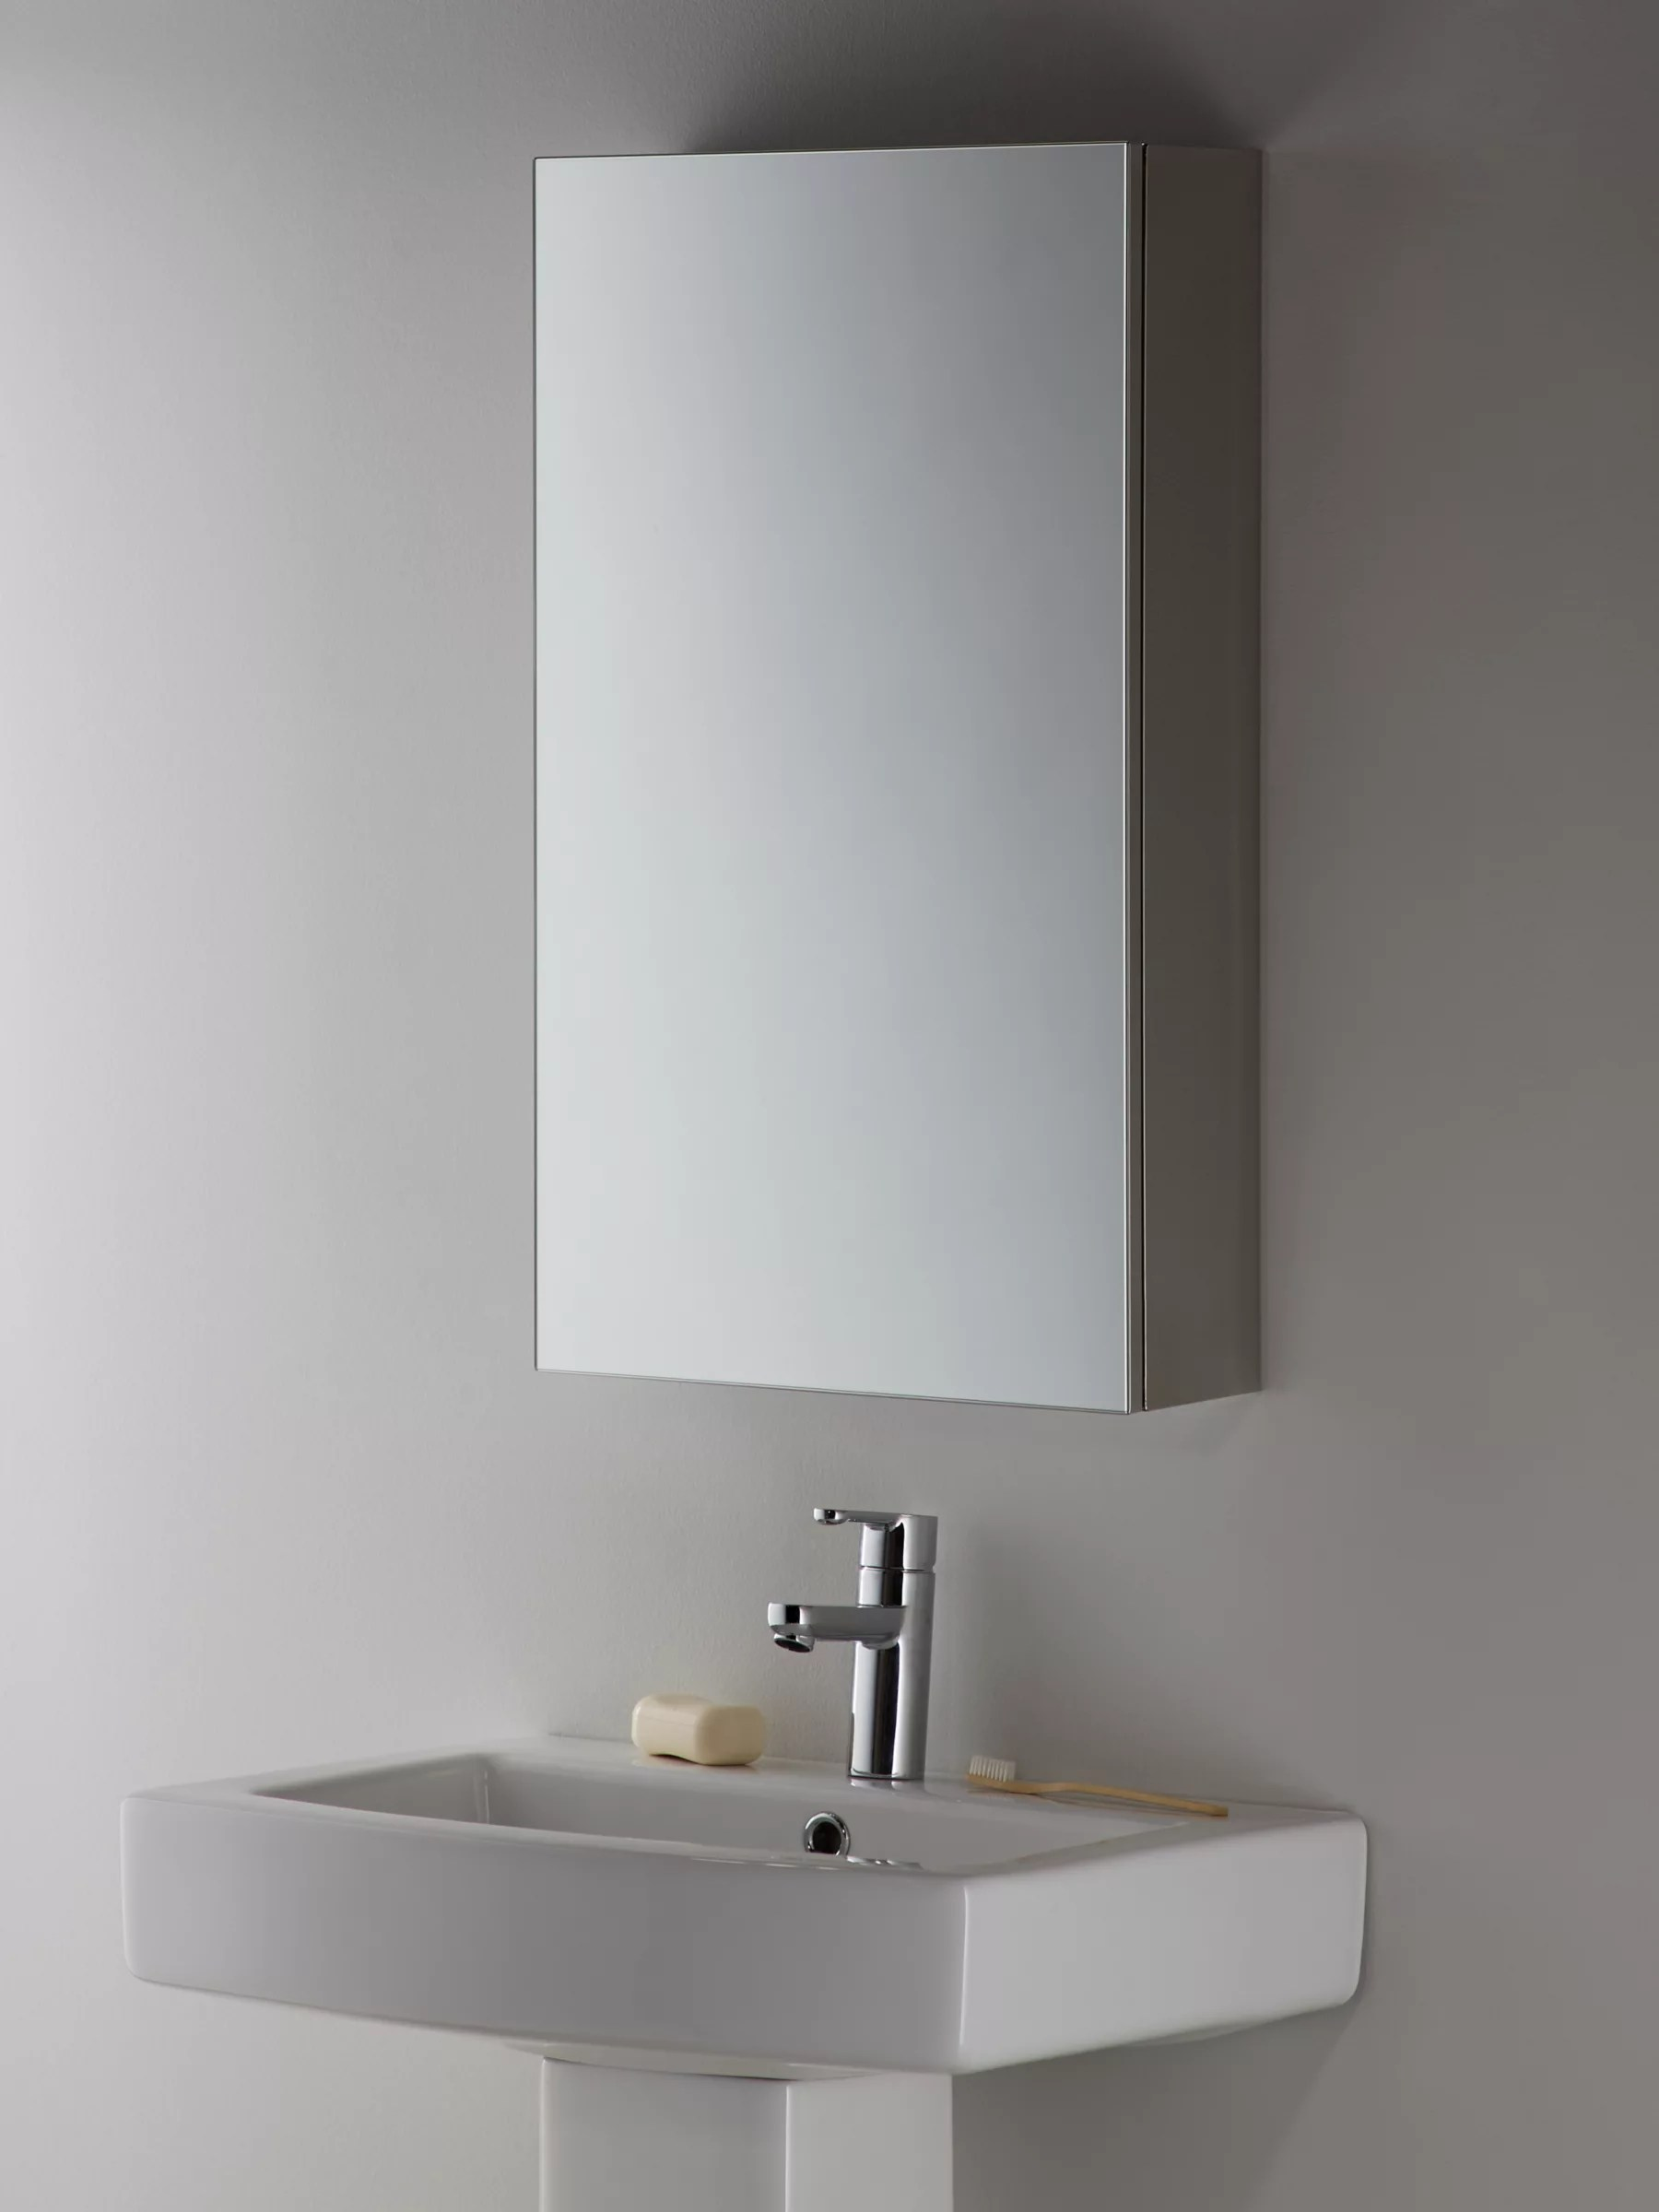 Mirrored Bathroom Cupboard John Lewis And Partners Single Mirrored Bathroom Cabinet